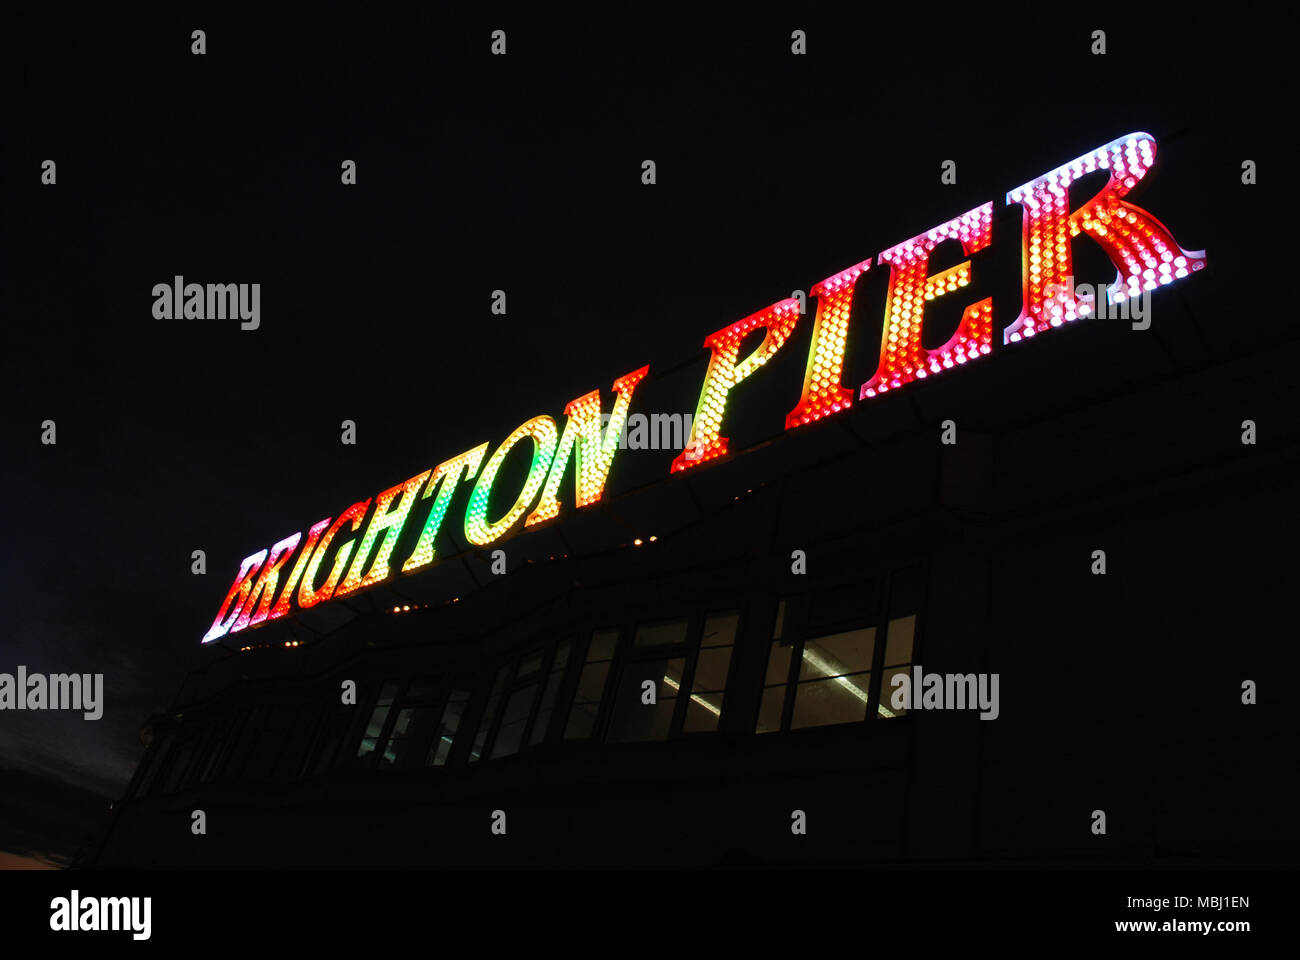 Bright Pier sign at Night - Stock Image